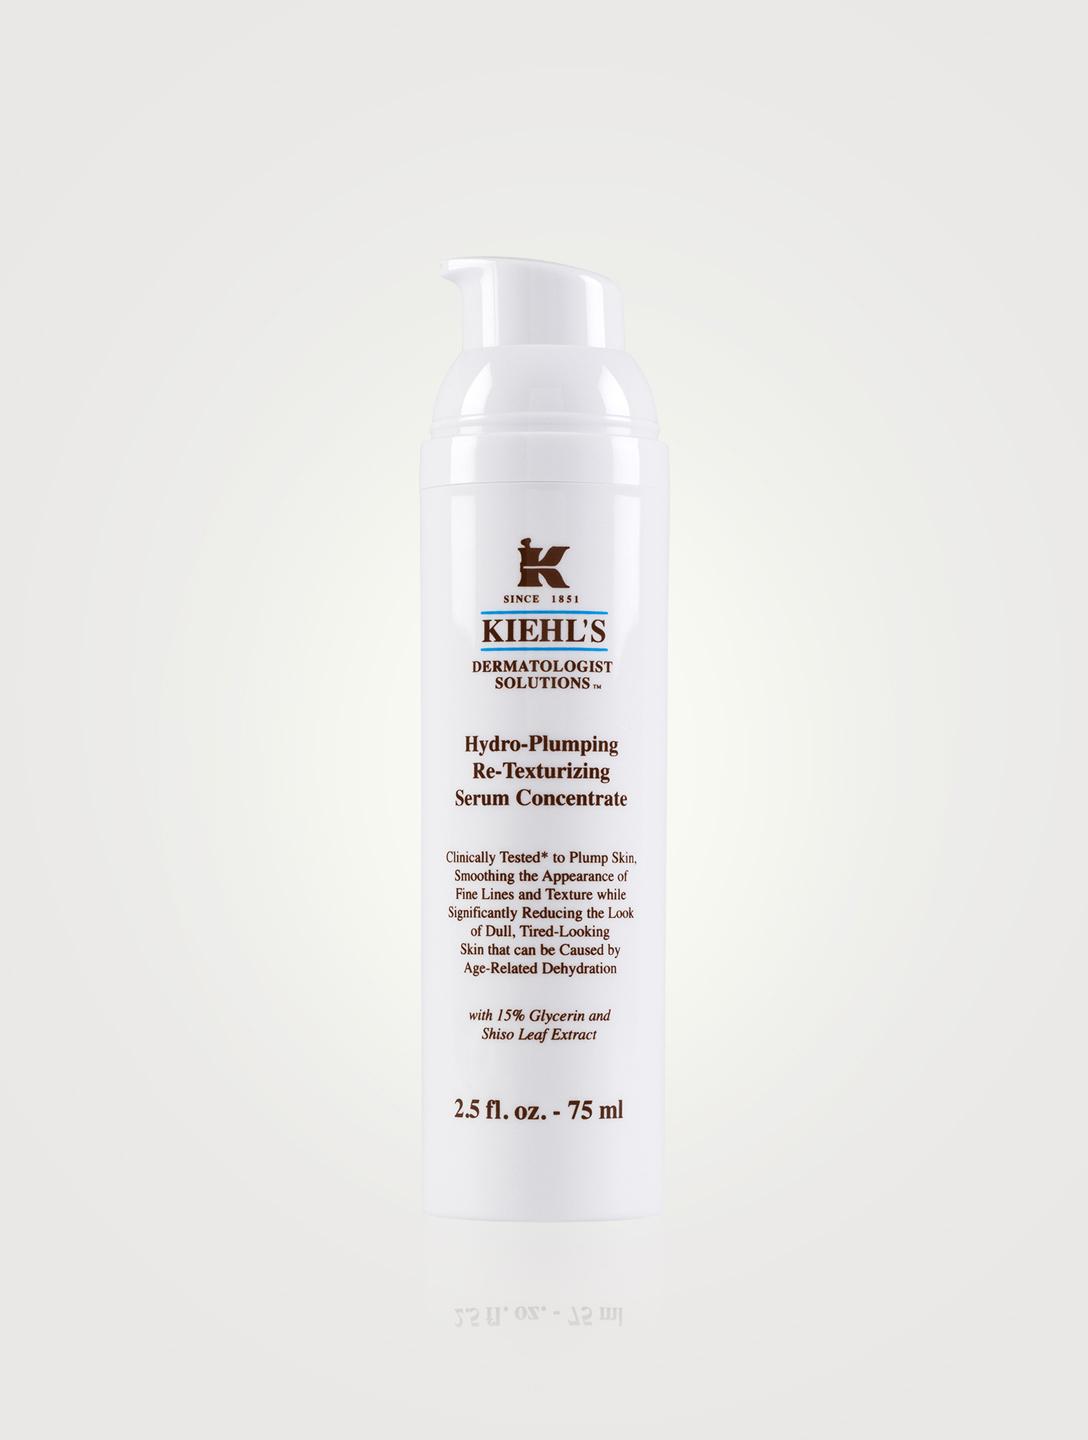 KIEHL'S Hydro-Plumping Re-Texturizing Serum Concentrate Beauty